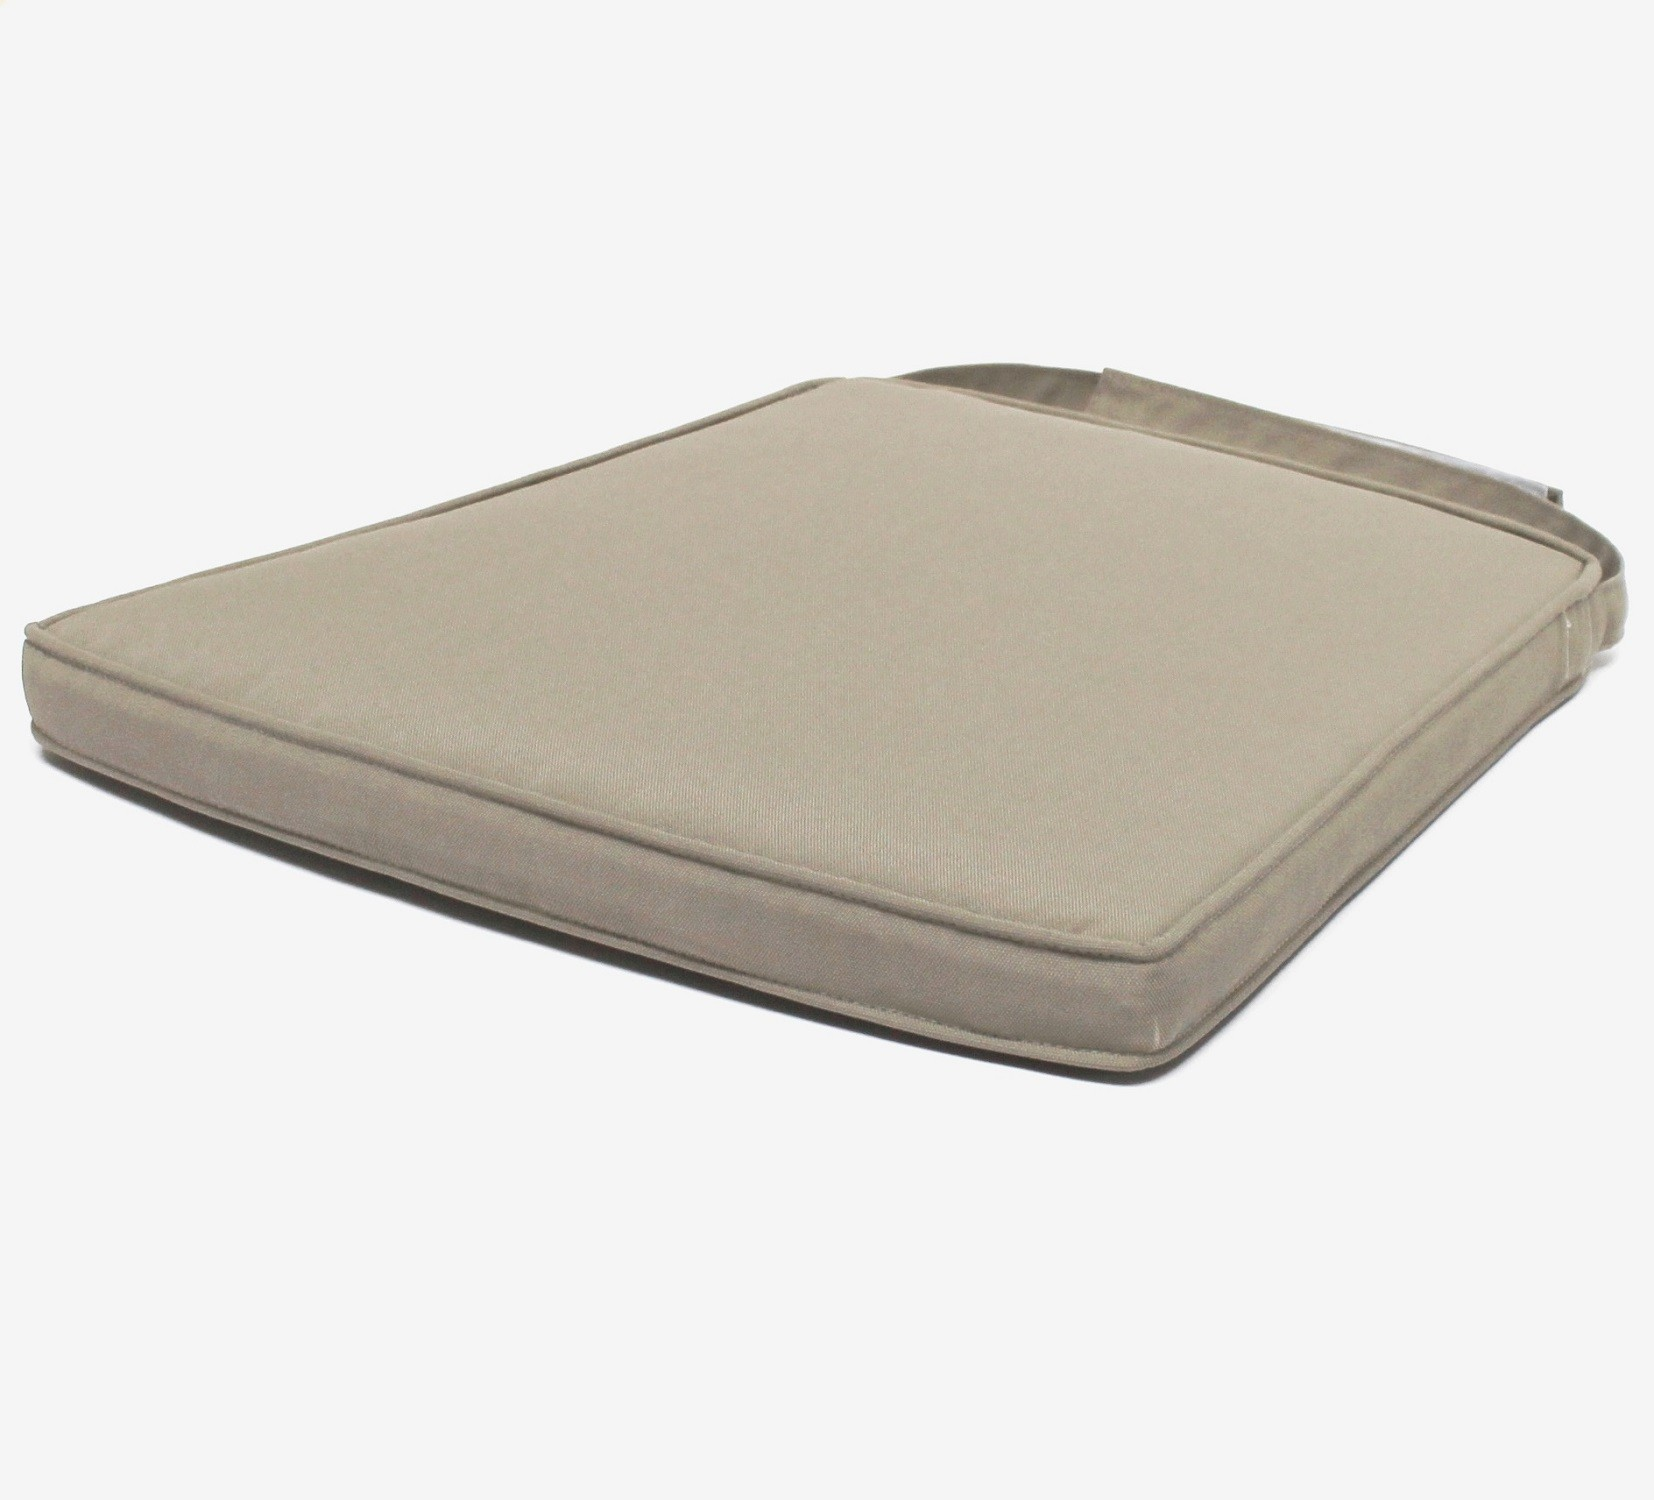 Coussin Carre Exterieur Coussin Taupe Pour Chaise Isabelle